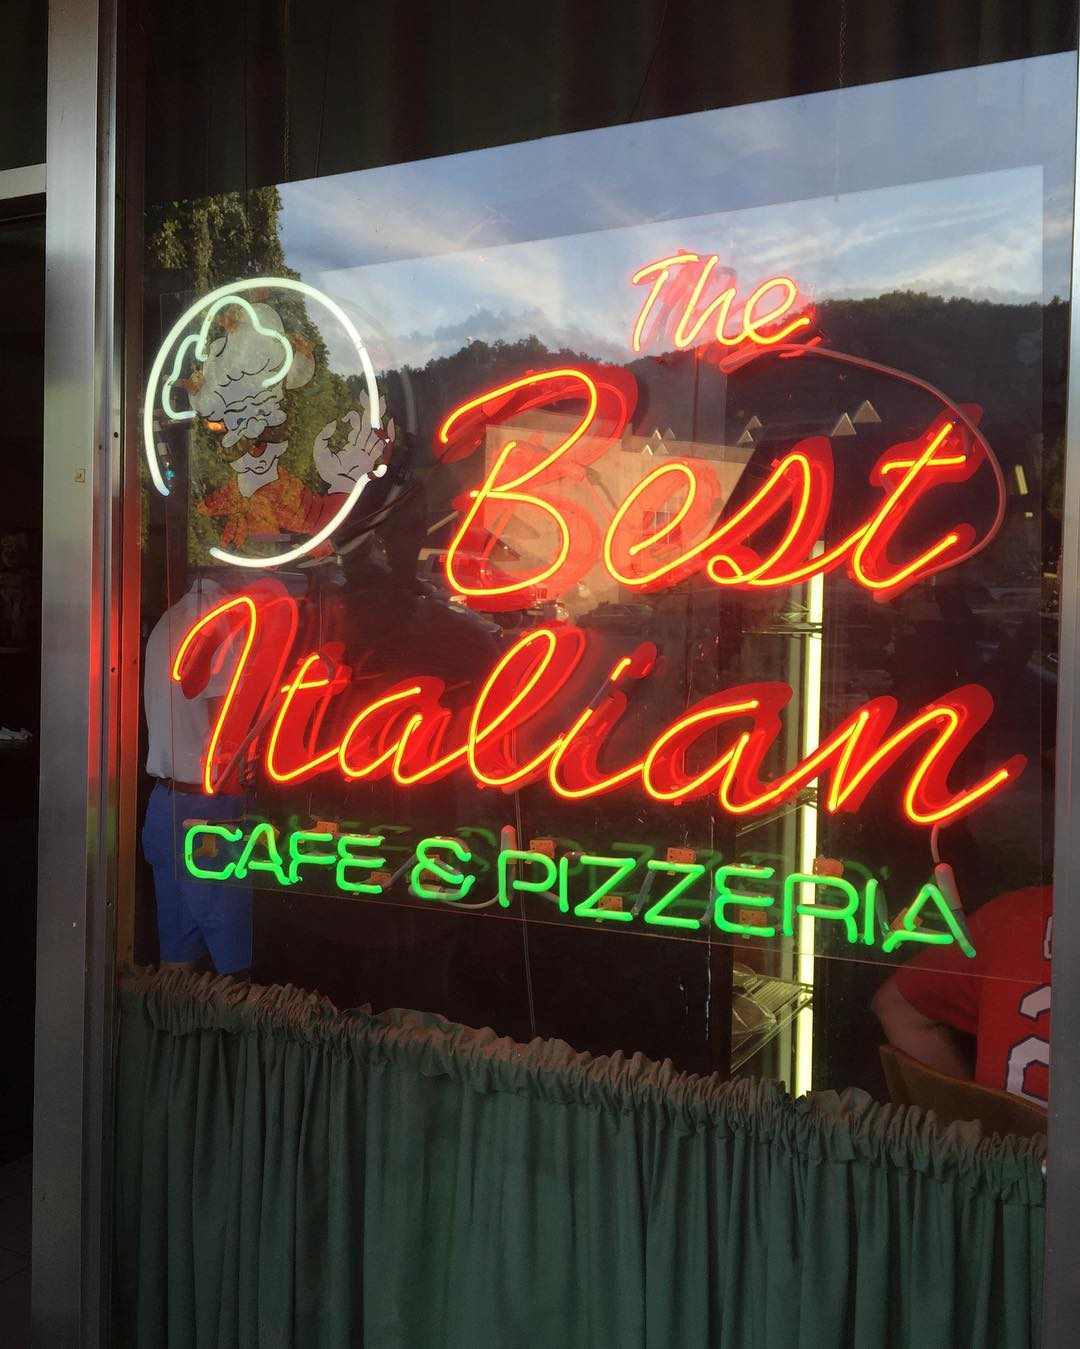 Gatlinburg Restaurants - The Best Italian Cafe and Pizzeria - Original Photo